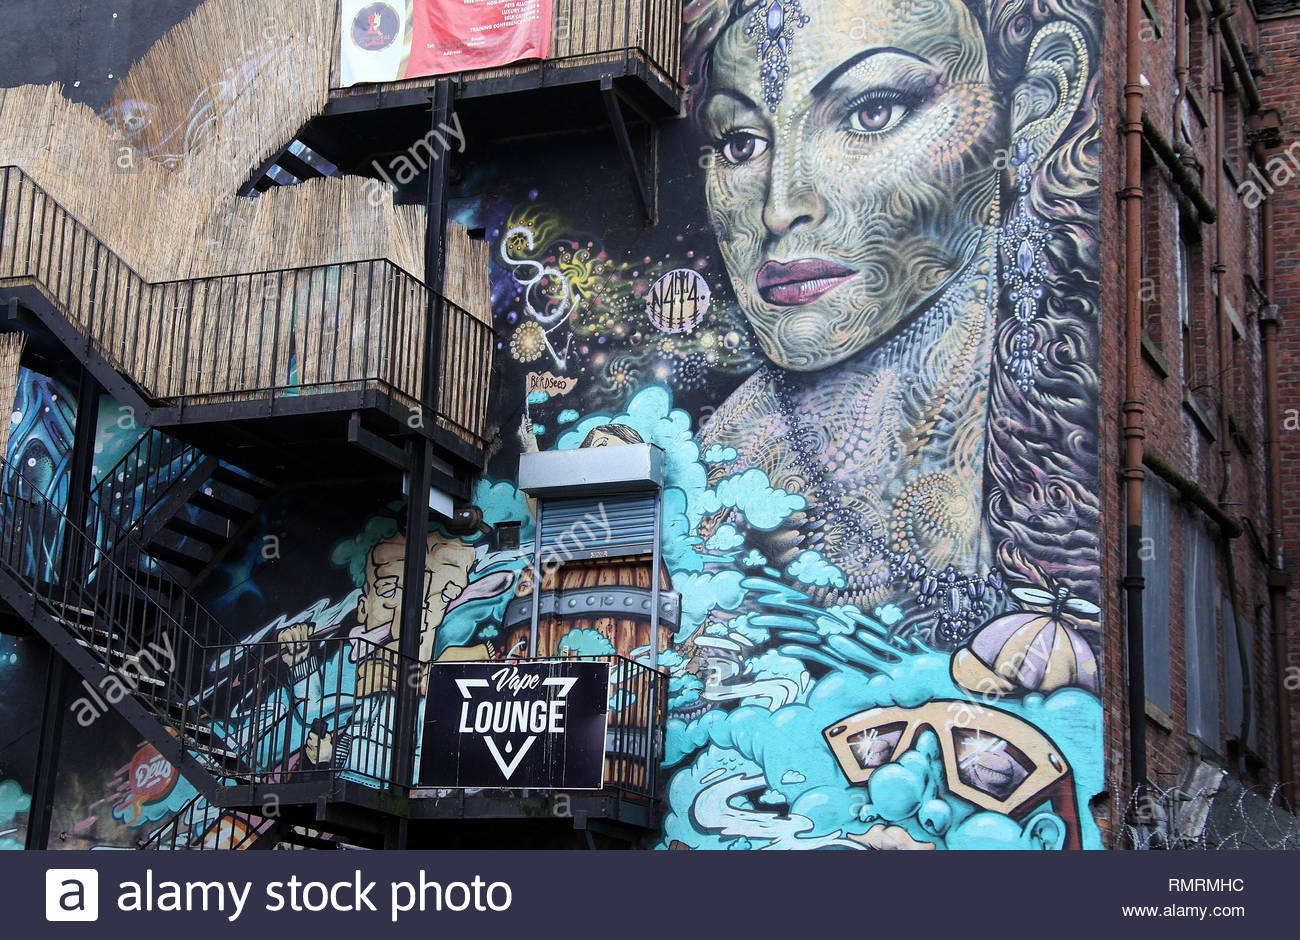 Property in the Northern Quarter of Manchester City Centre with iconic street art by Subism - Stock Image